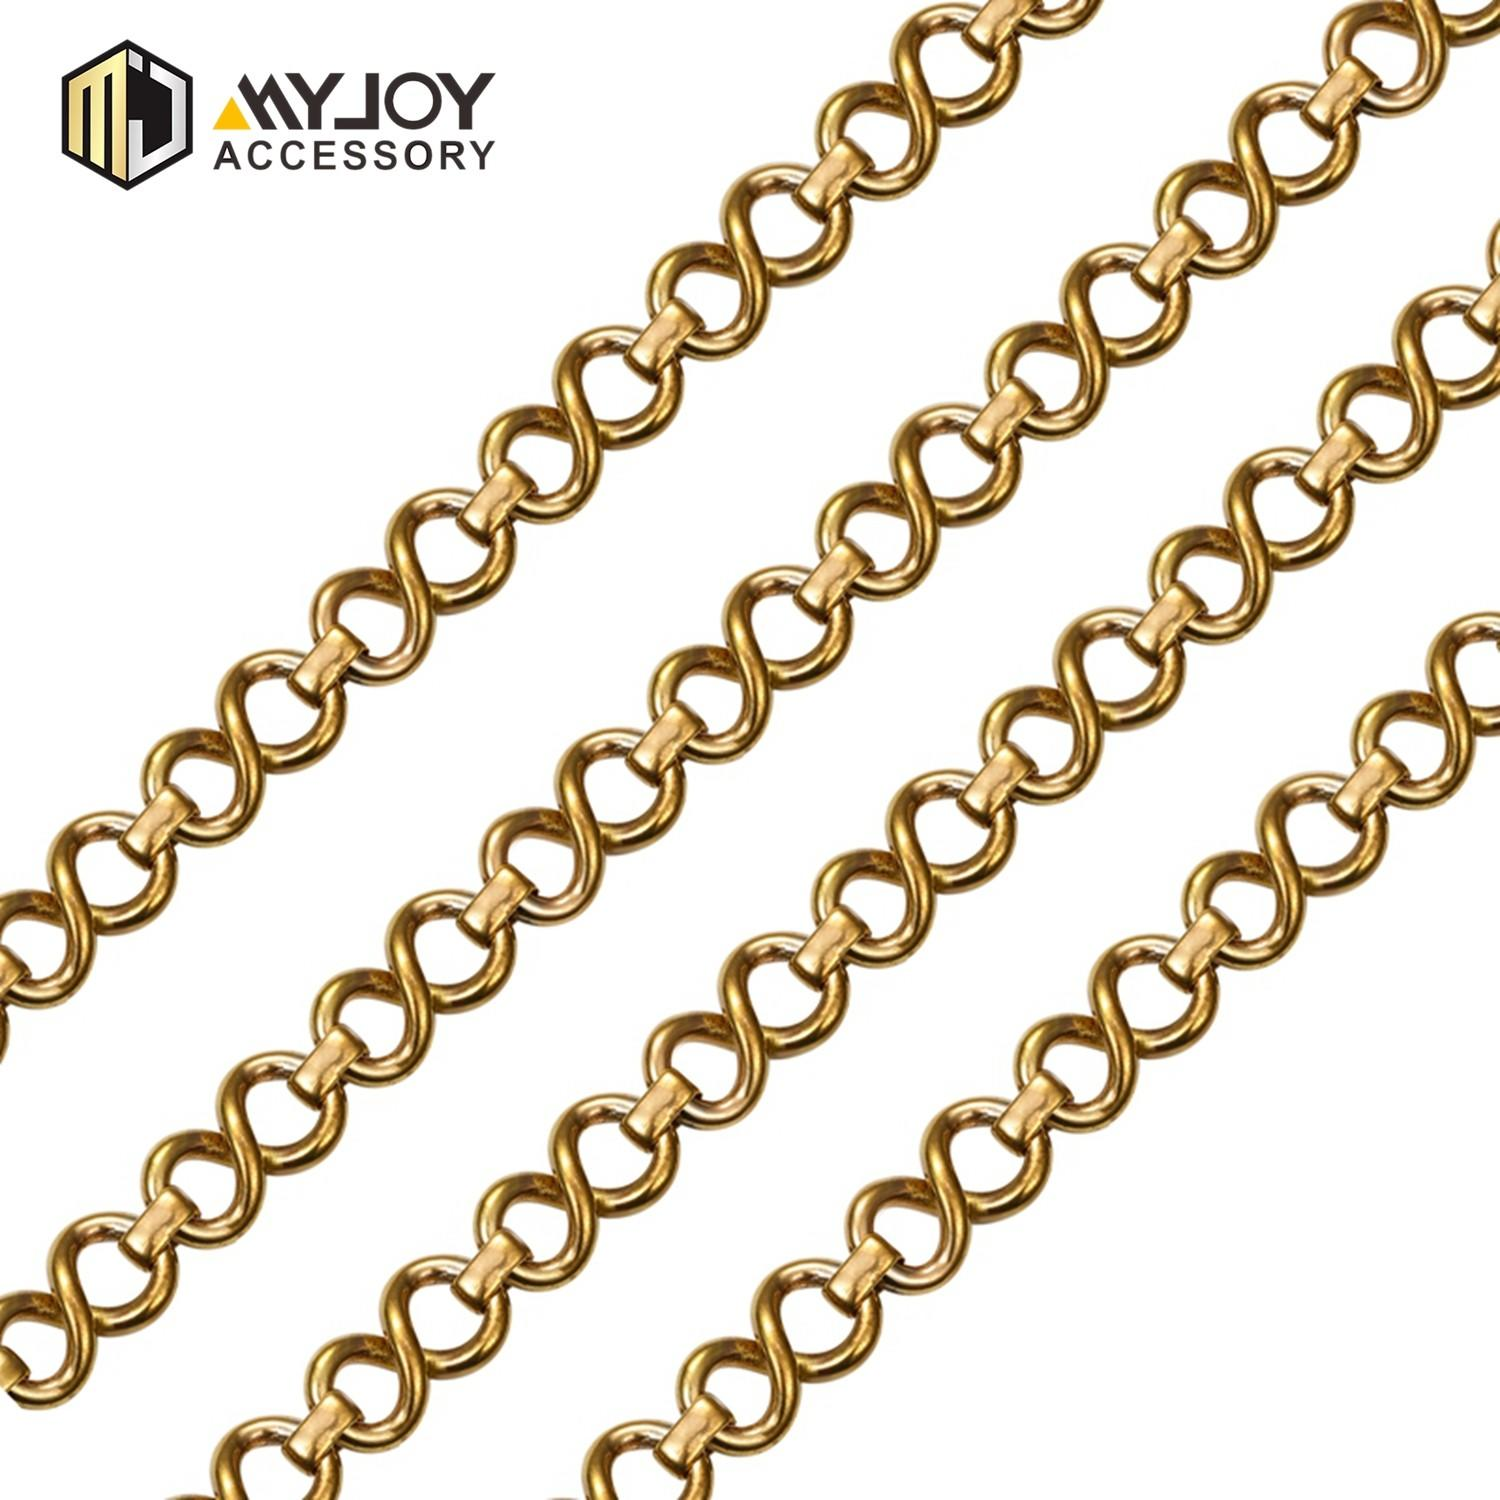 MYJOY Latest strap chain Supply for handbag-3